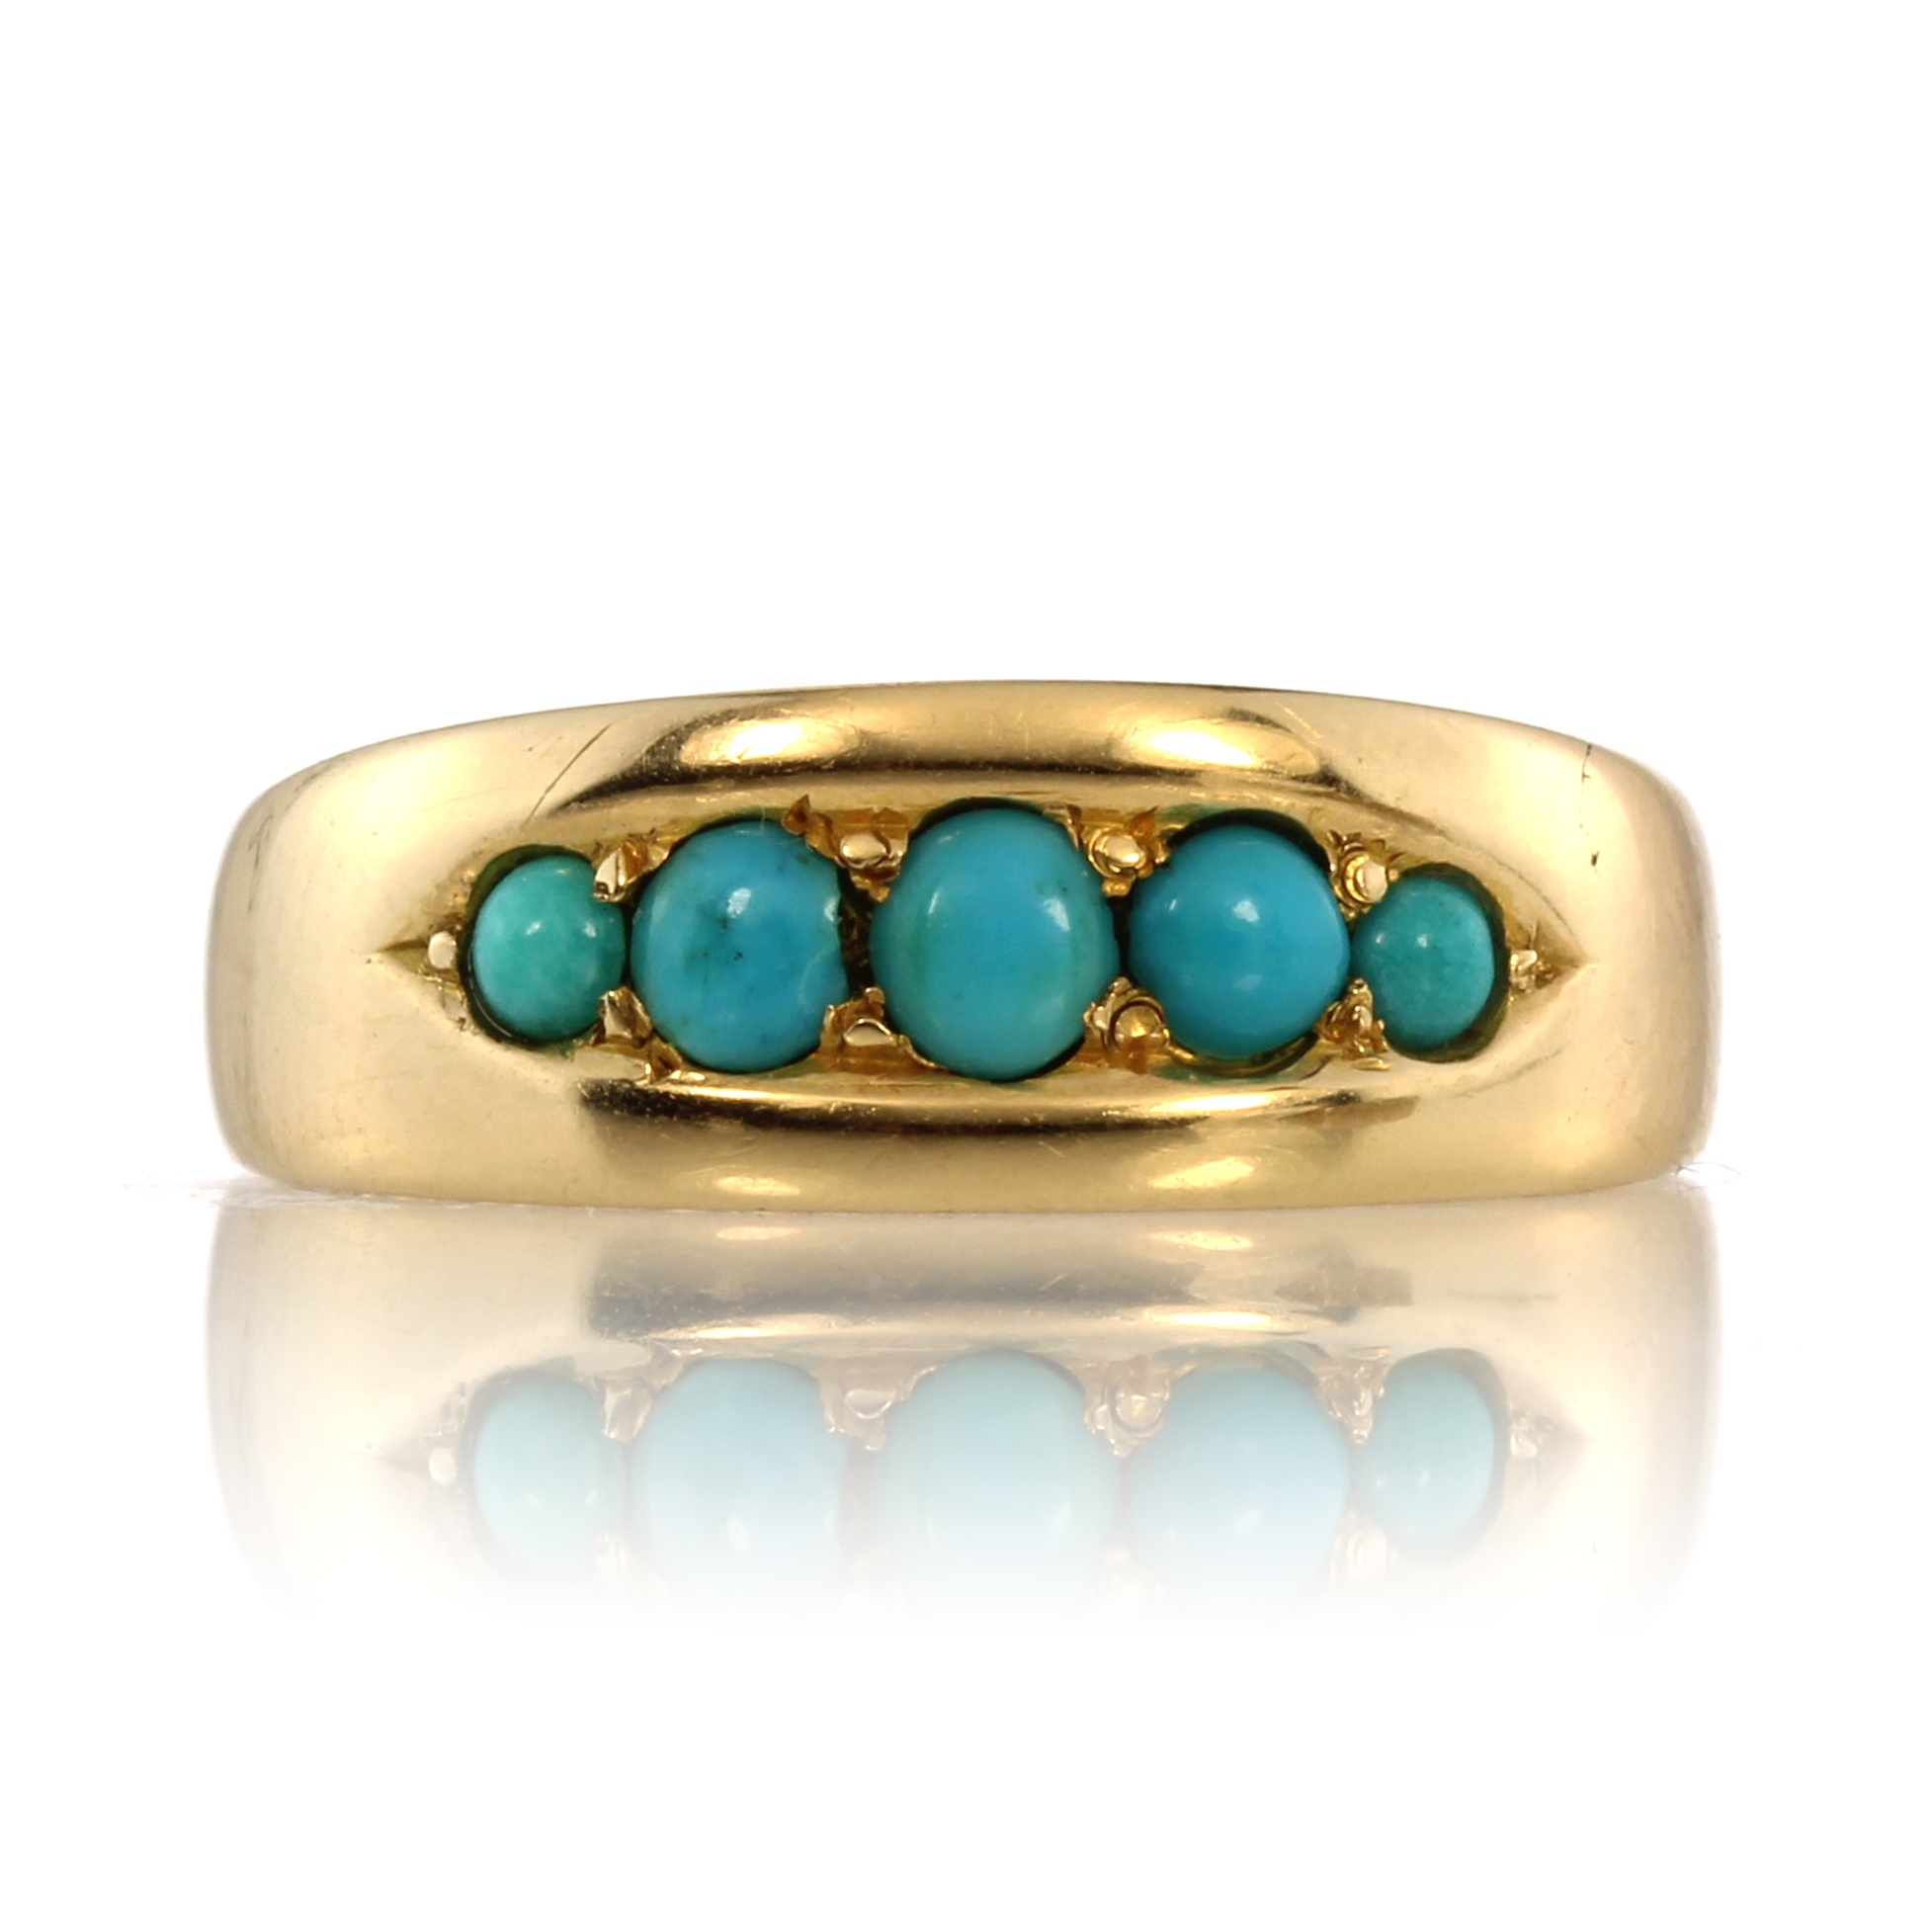 Los 61 - An antique turquoise five stone dress ring in 15ct yellow gold designed as five graduated